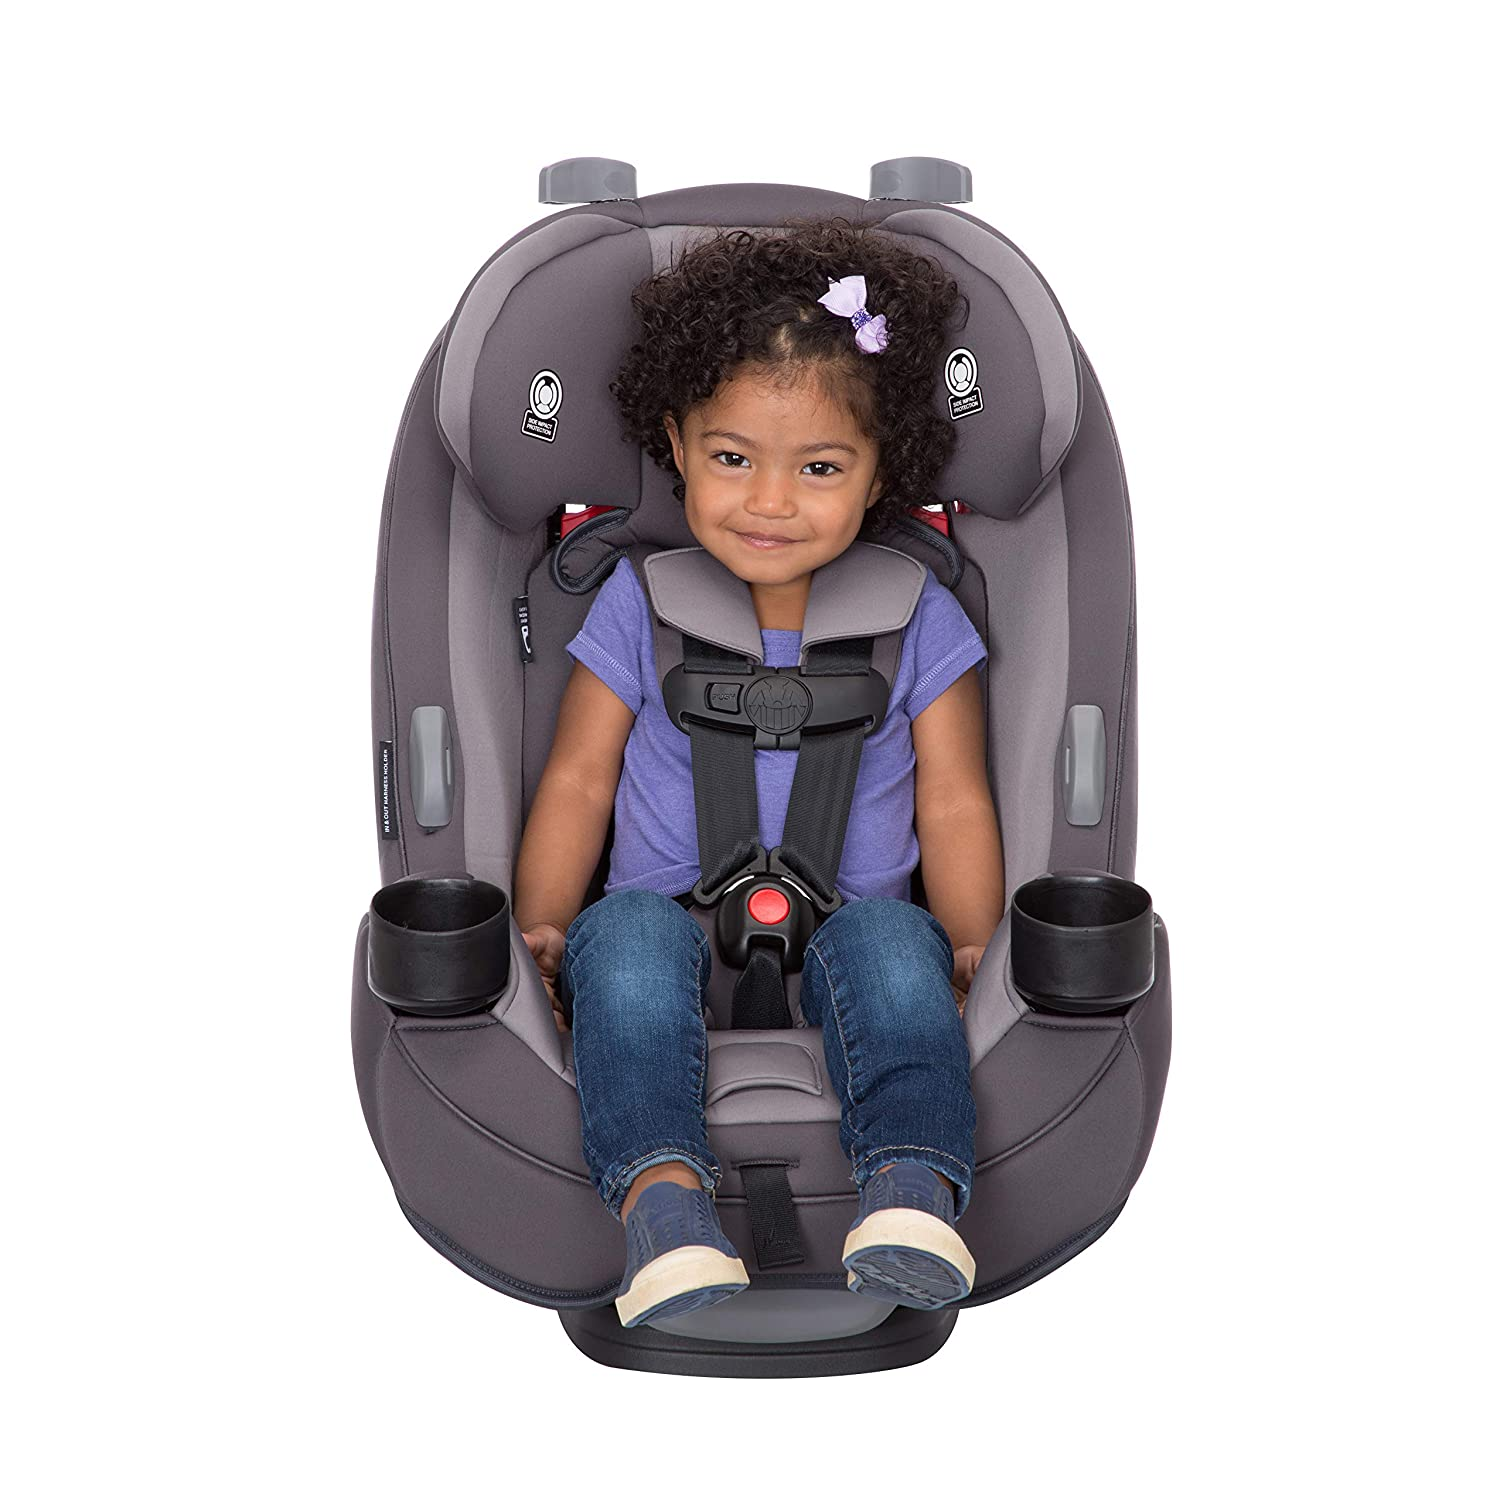 Vitamint Safety 1st Grow and Go 3-in-1 Convertible Car Seat